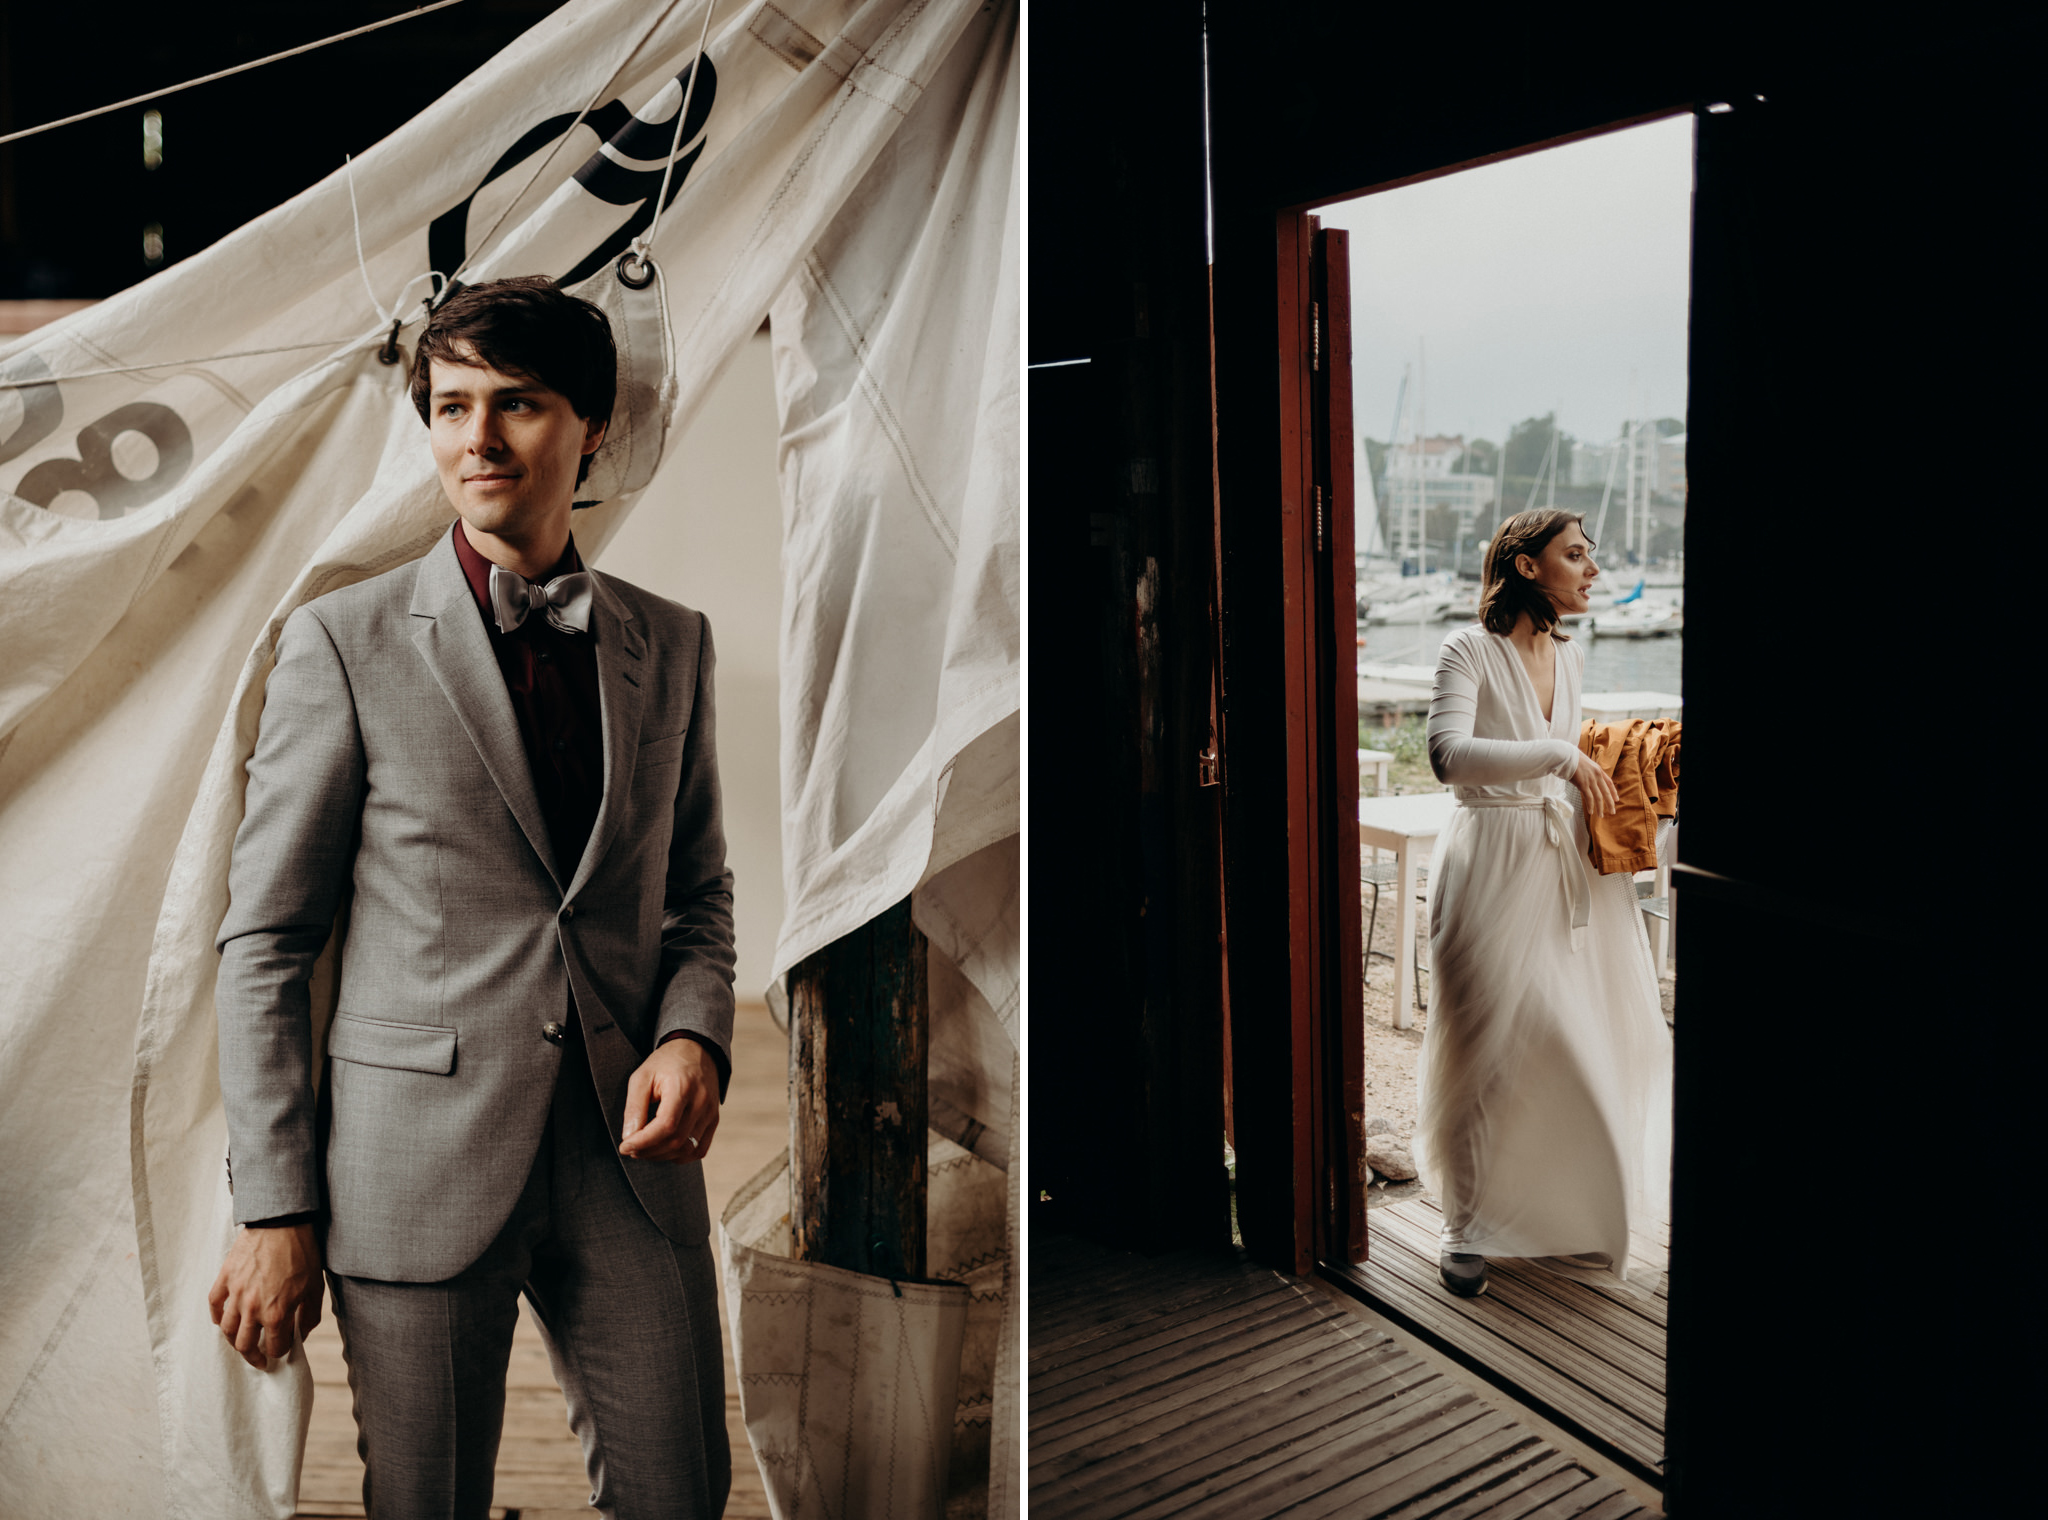 bride and groom getting dressed in old boathouse in Helsinki